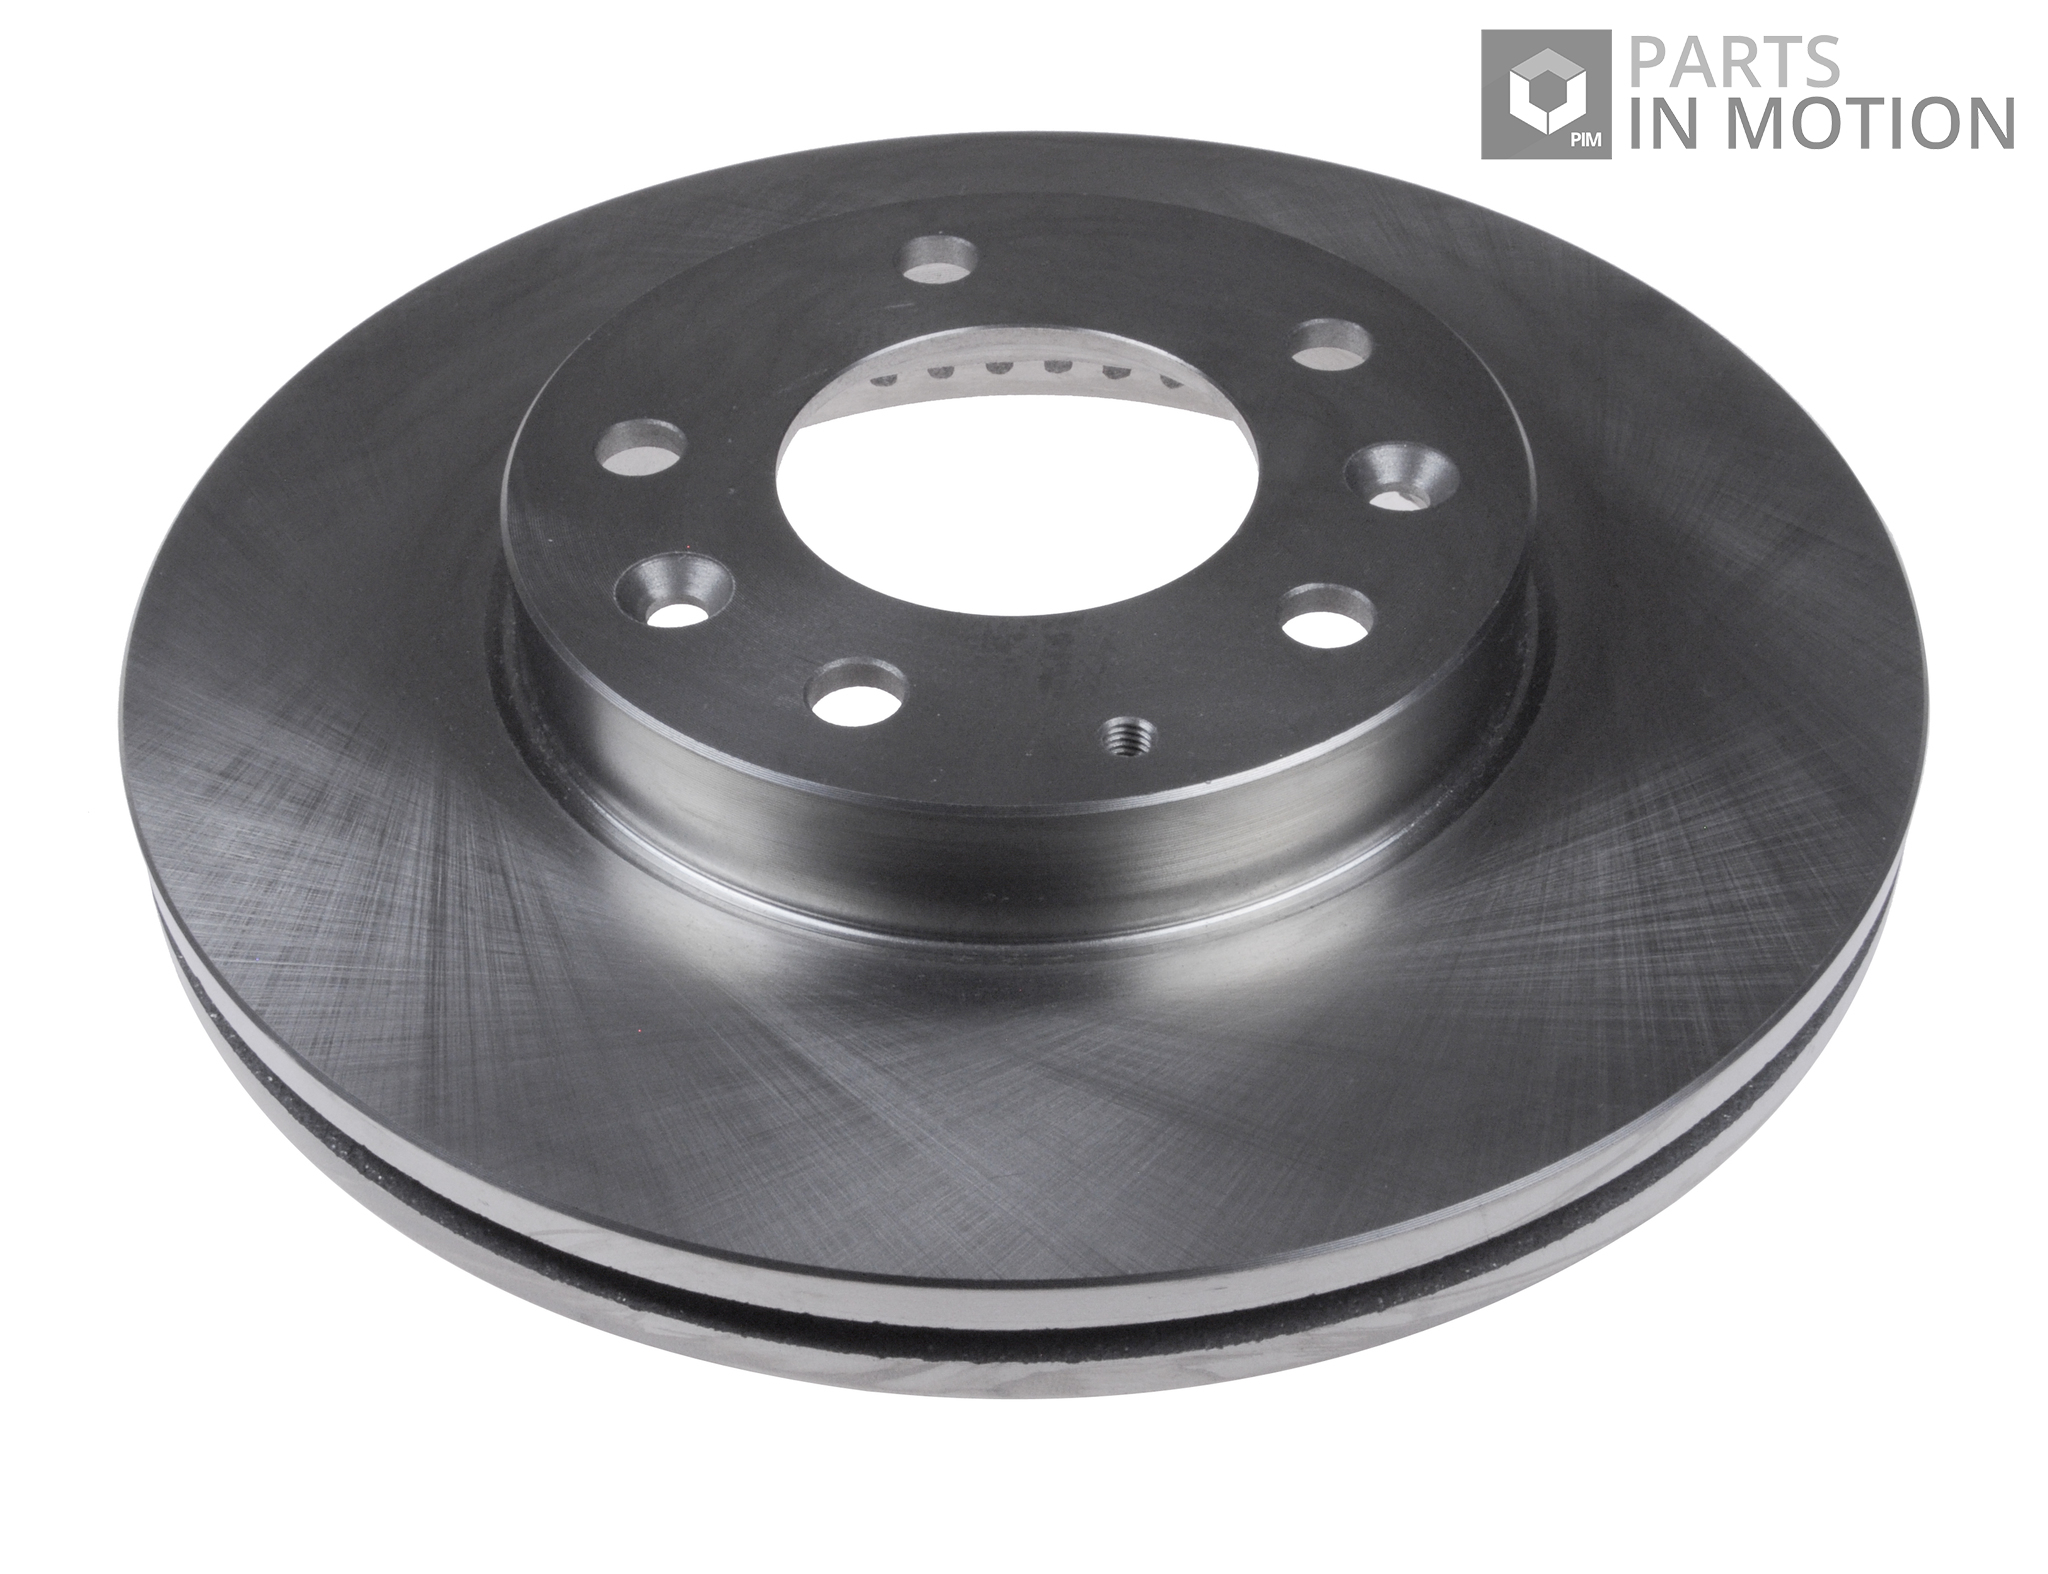 QH BDC3951 Front Axle Internally Vented Brake Disc